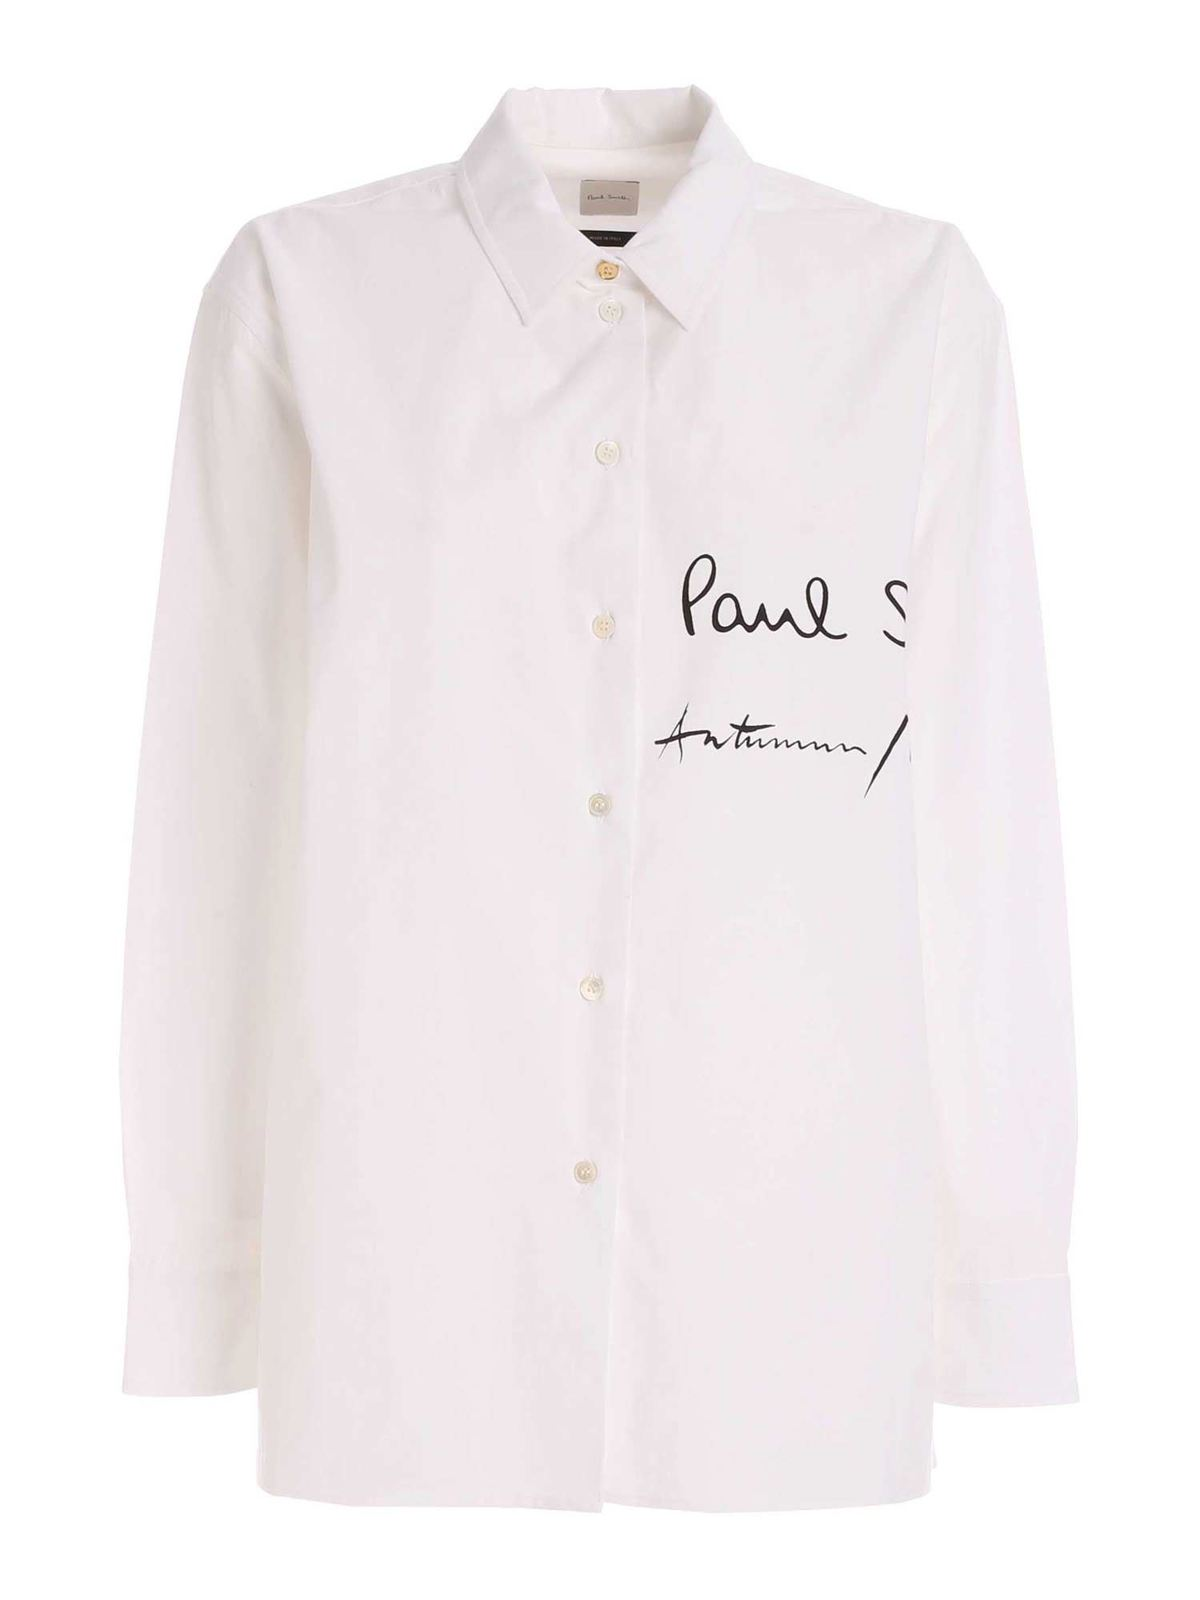 Paul Smith SIGNATURE BLACK LOGO SHIRT IN WHITE